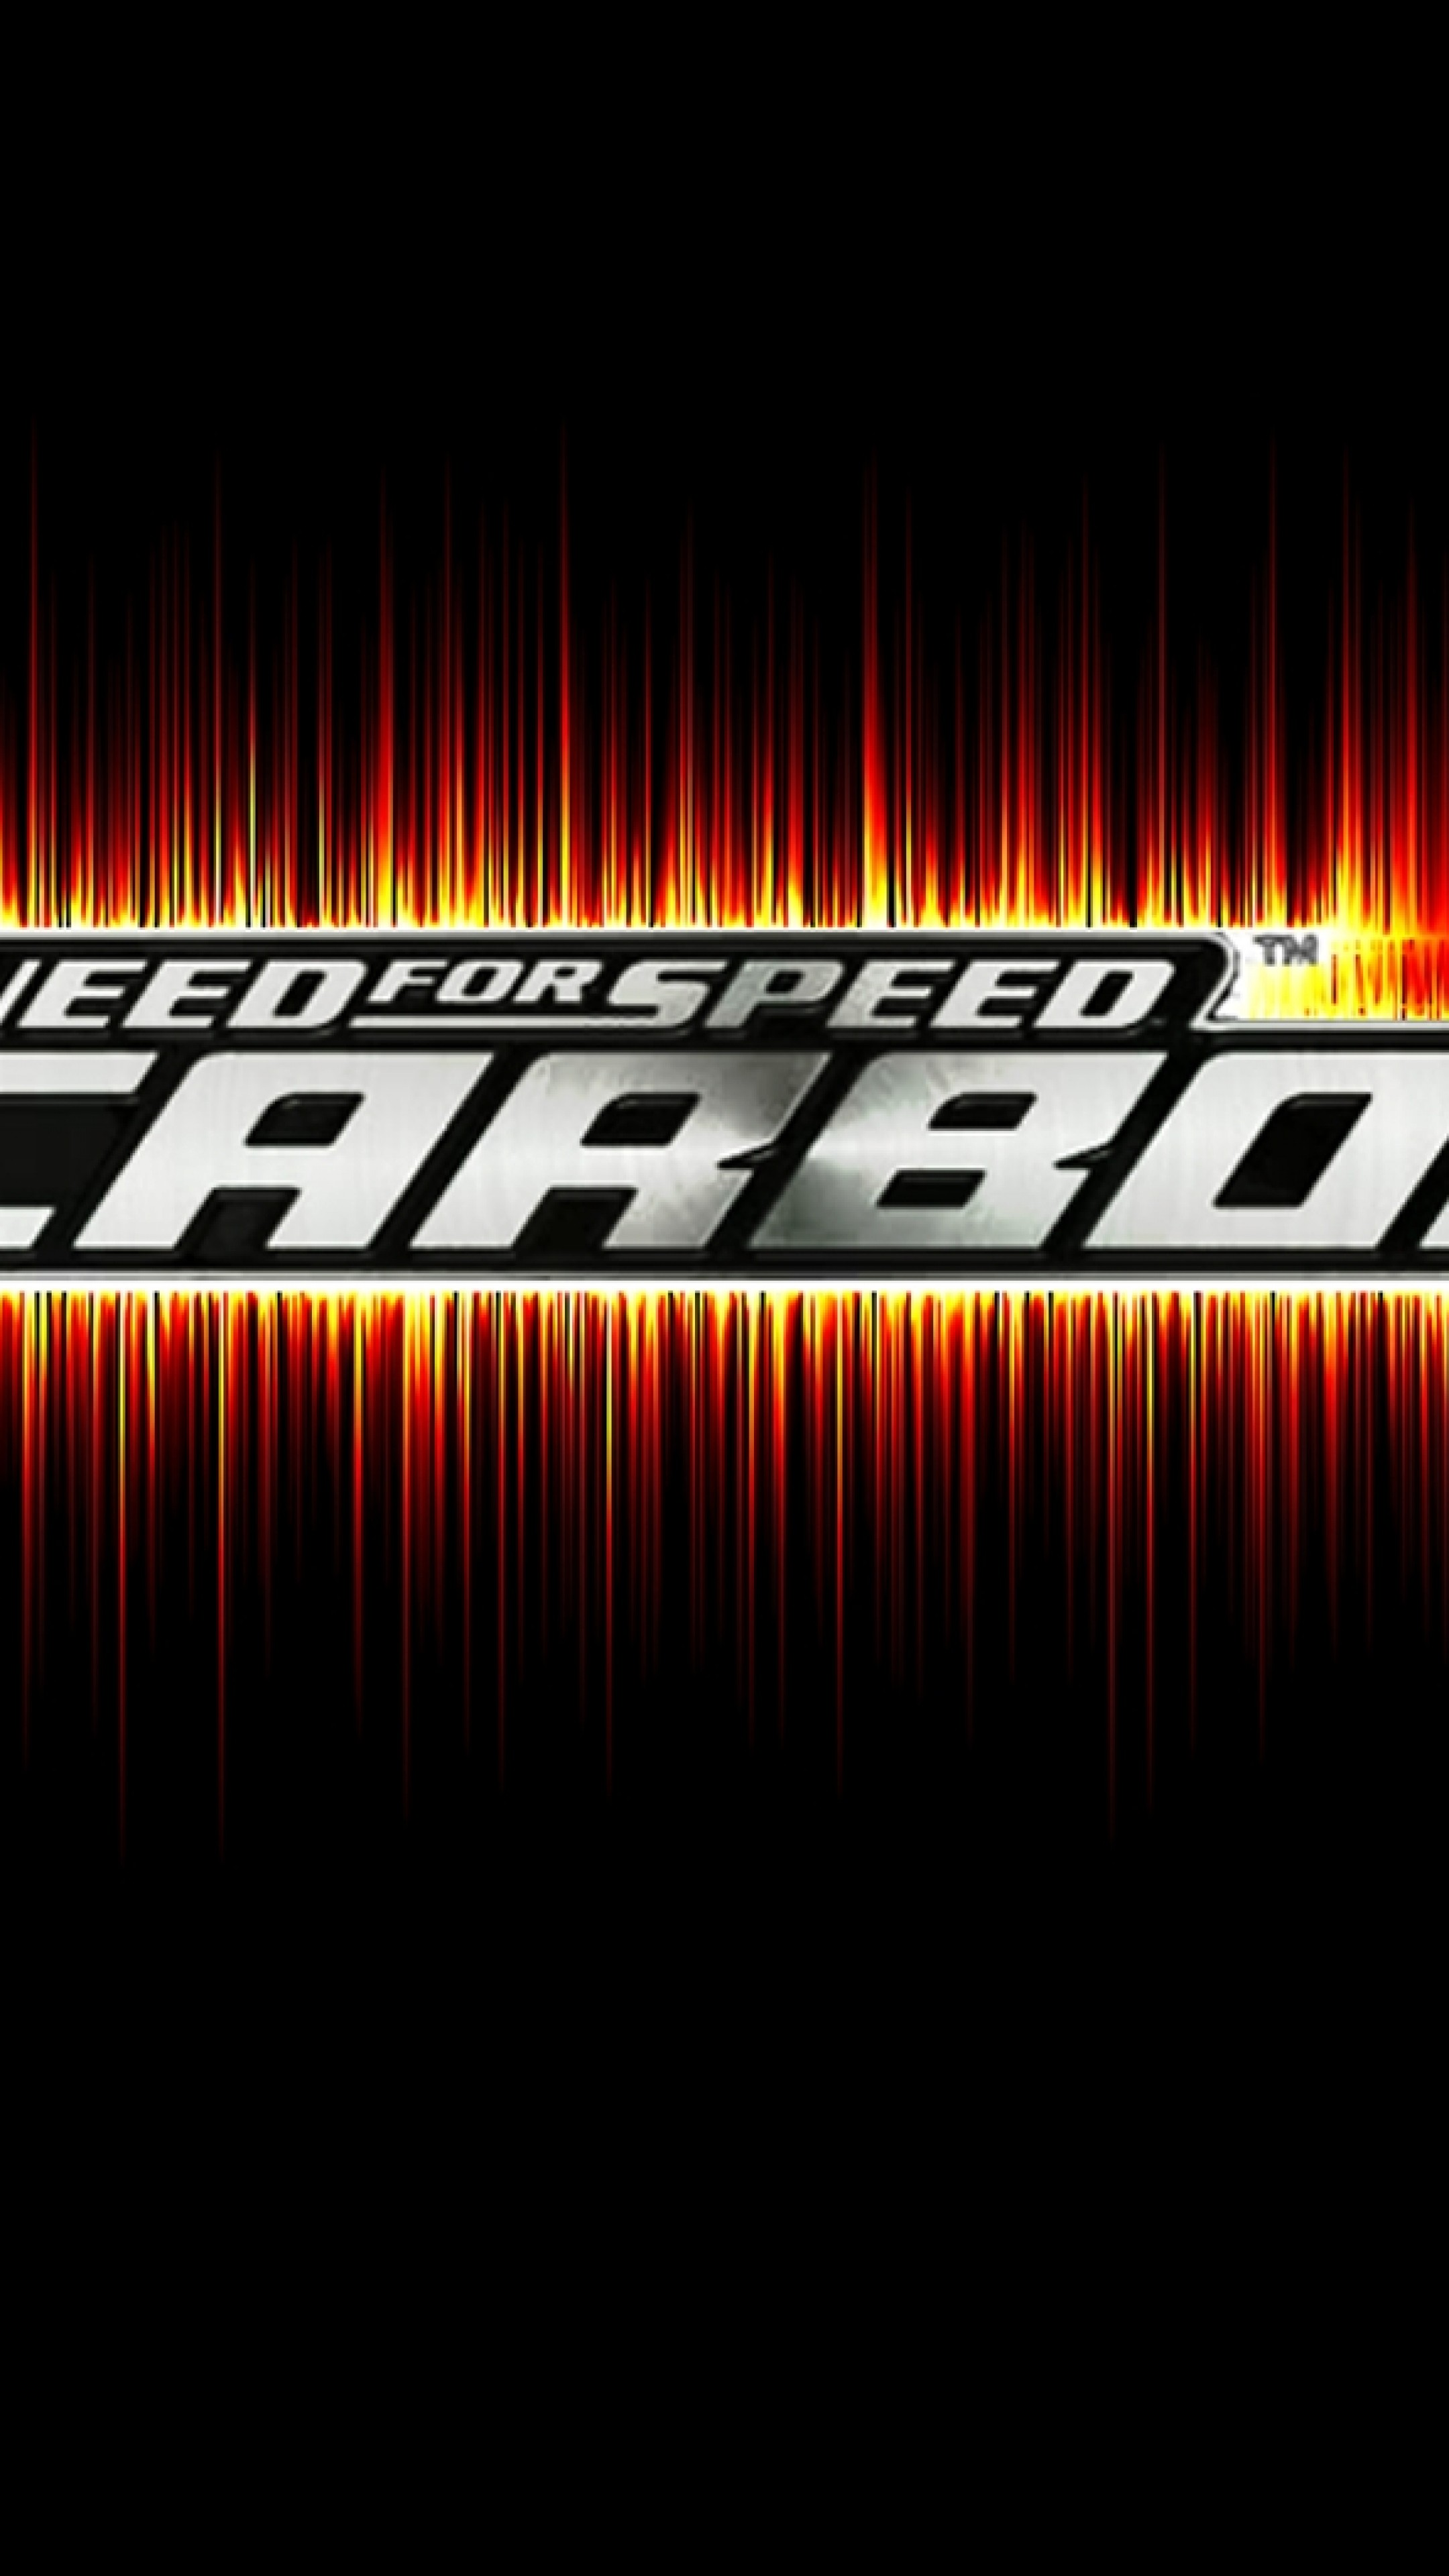 2160x3840  Wallpaper need for speed carbon, graphics, font, game, background